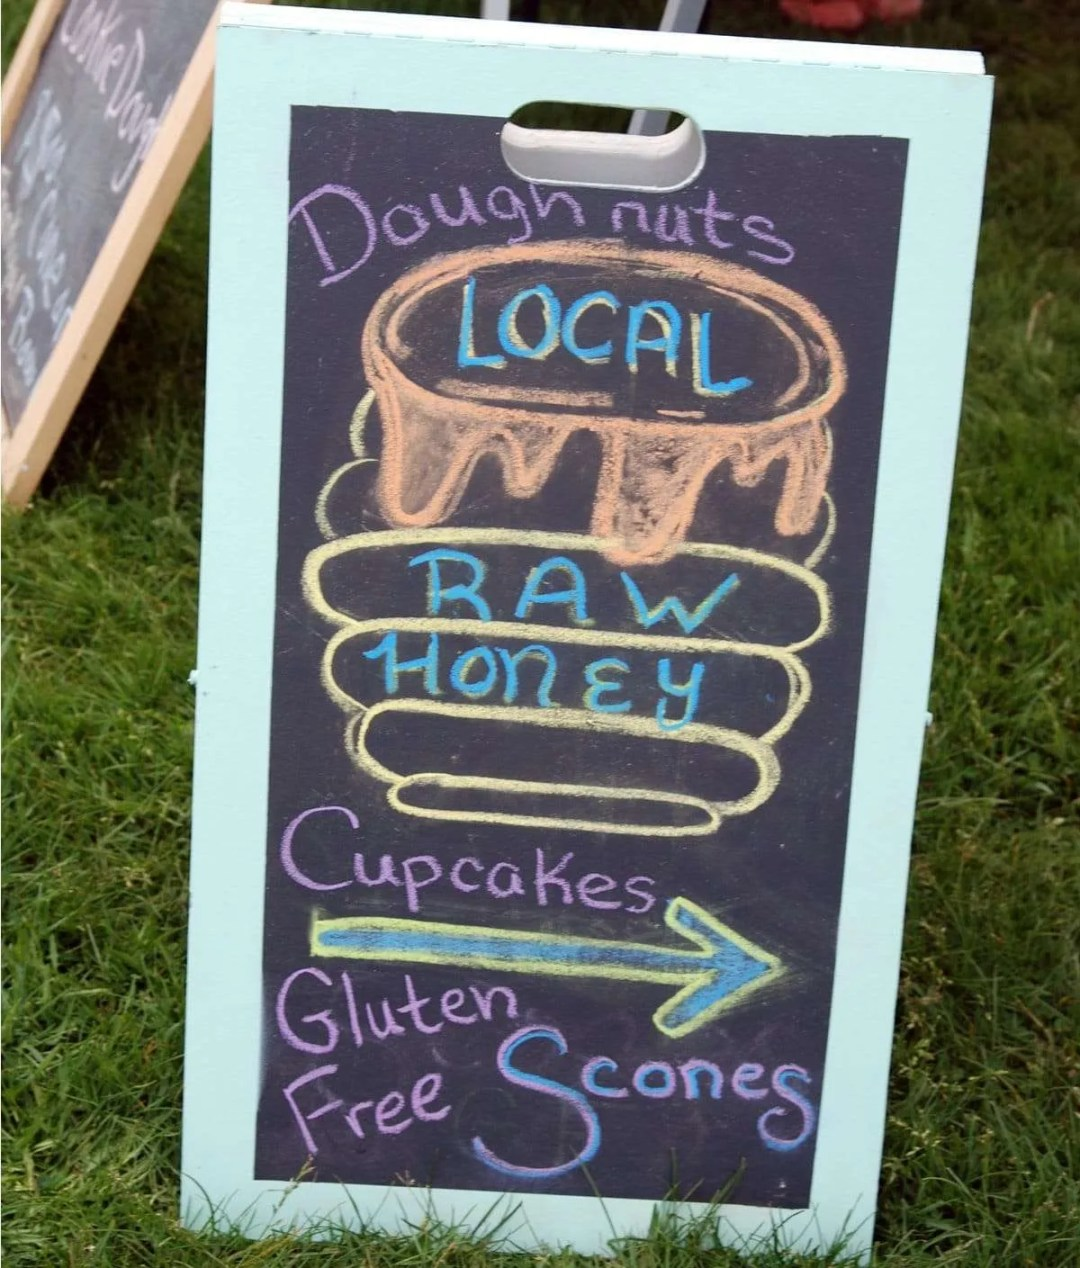 Thistle & Thorn Apiary and Homestead - Craftsbury Farmers Market